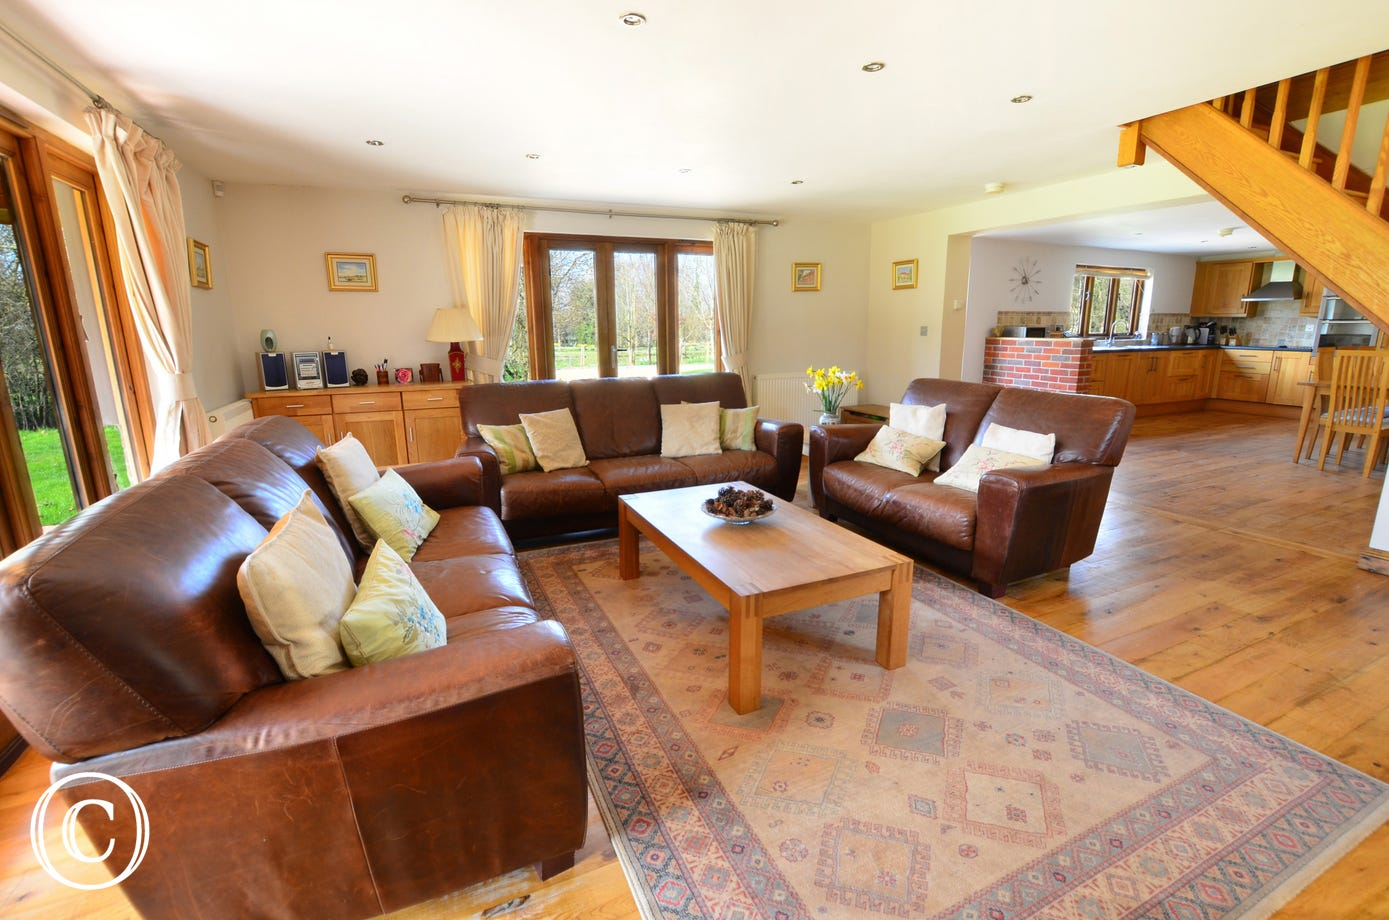 Light and airy with comfortable leather sofas in the sitting area and french doors to the garden